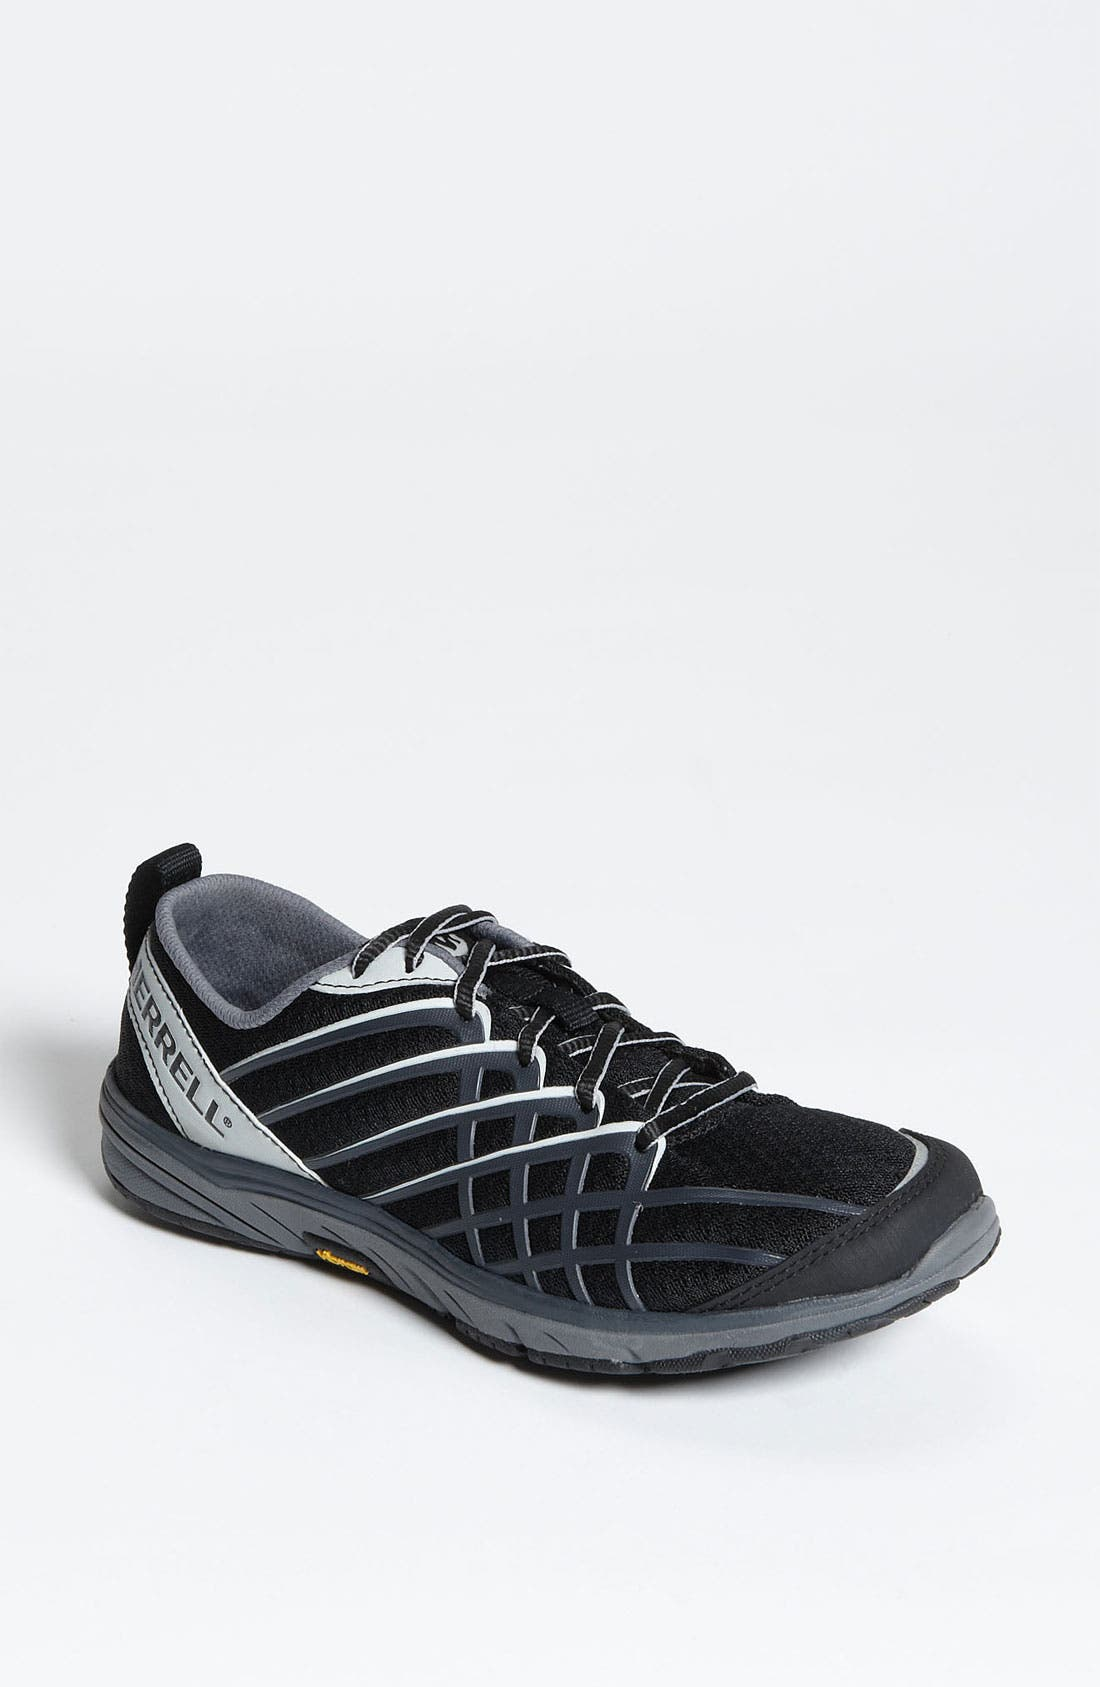 Alternate Image 1 Selected - Merrell 'Bare Access Arc 2' Running Shoe (Women)